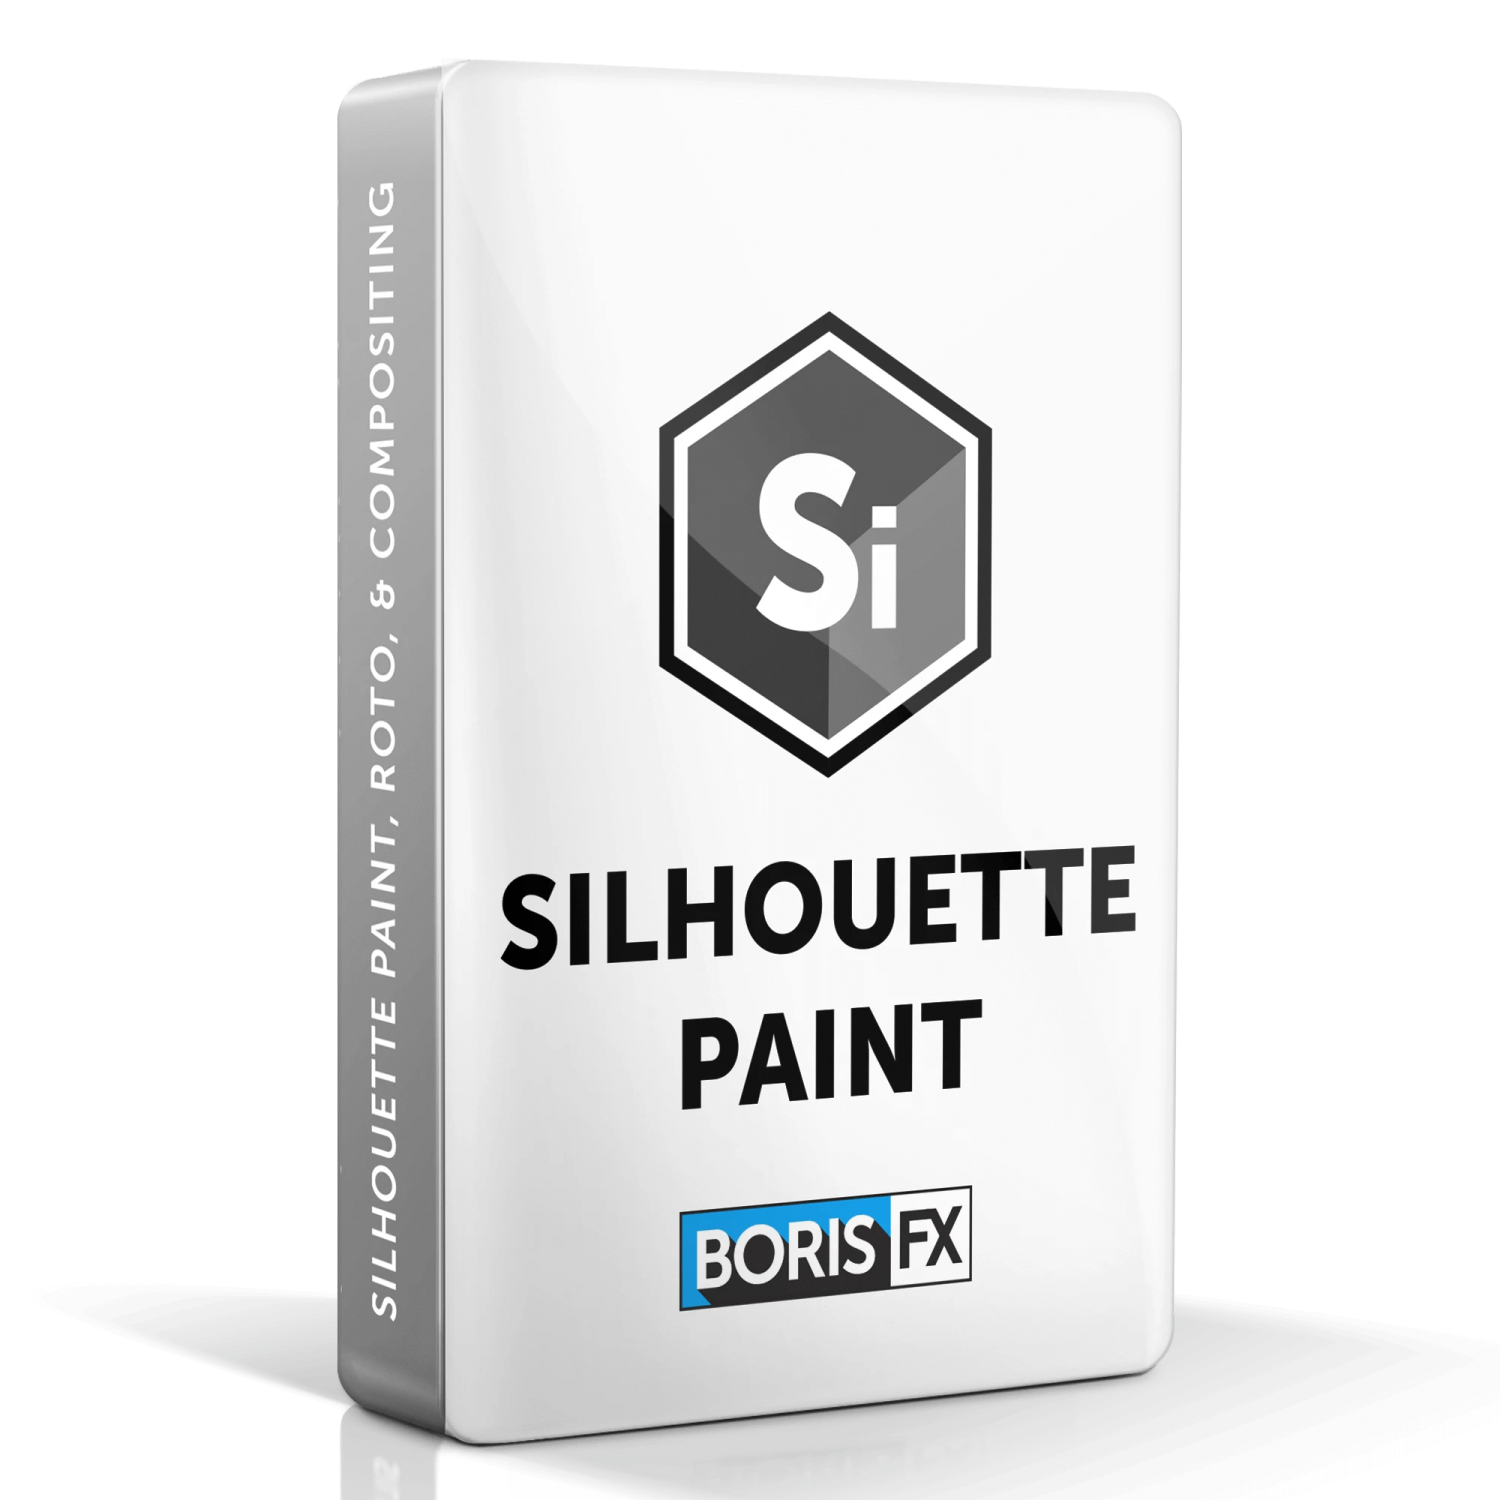 Silhouette Paint